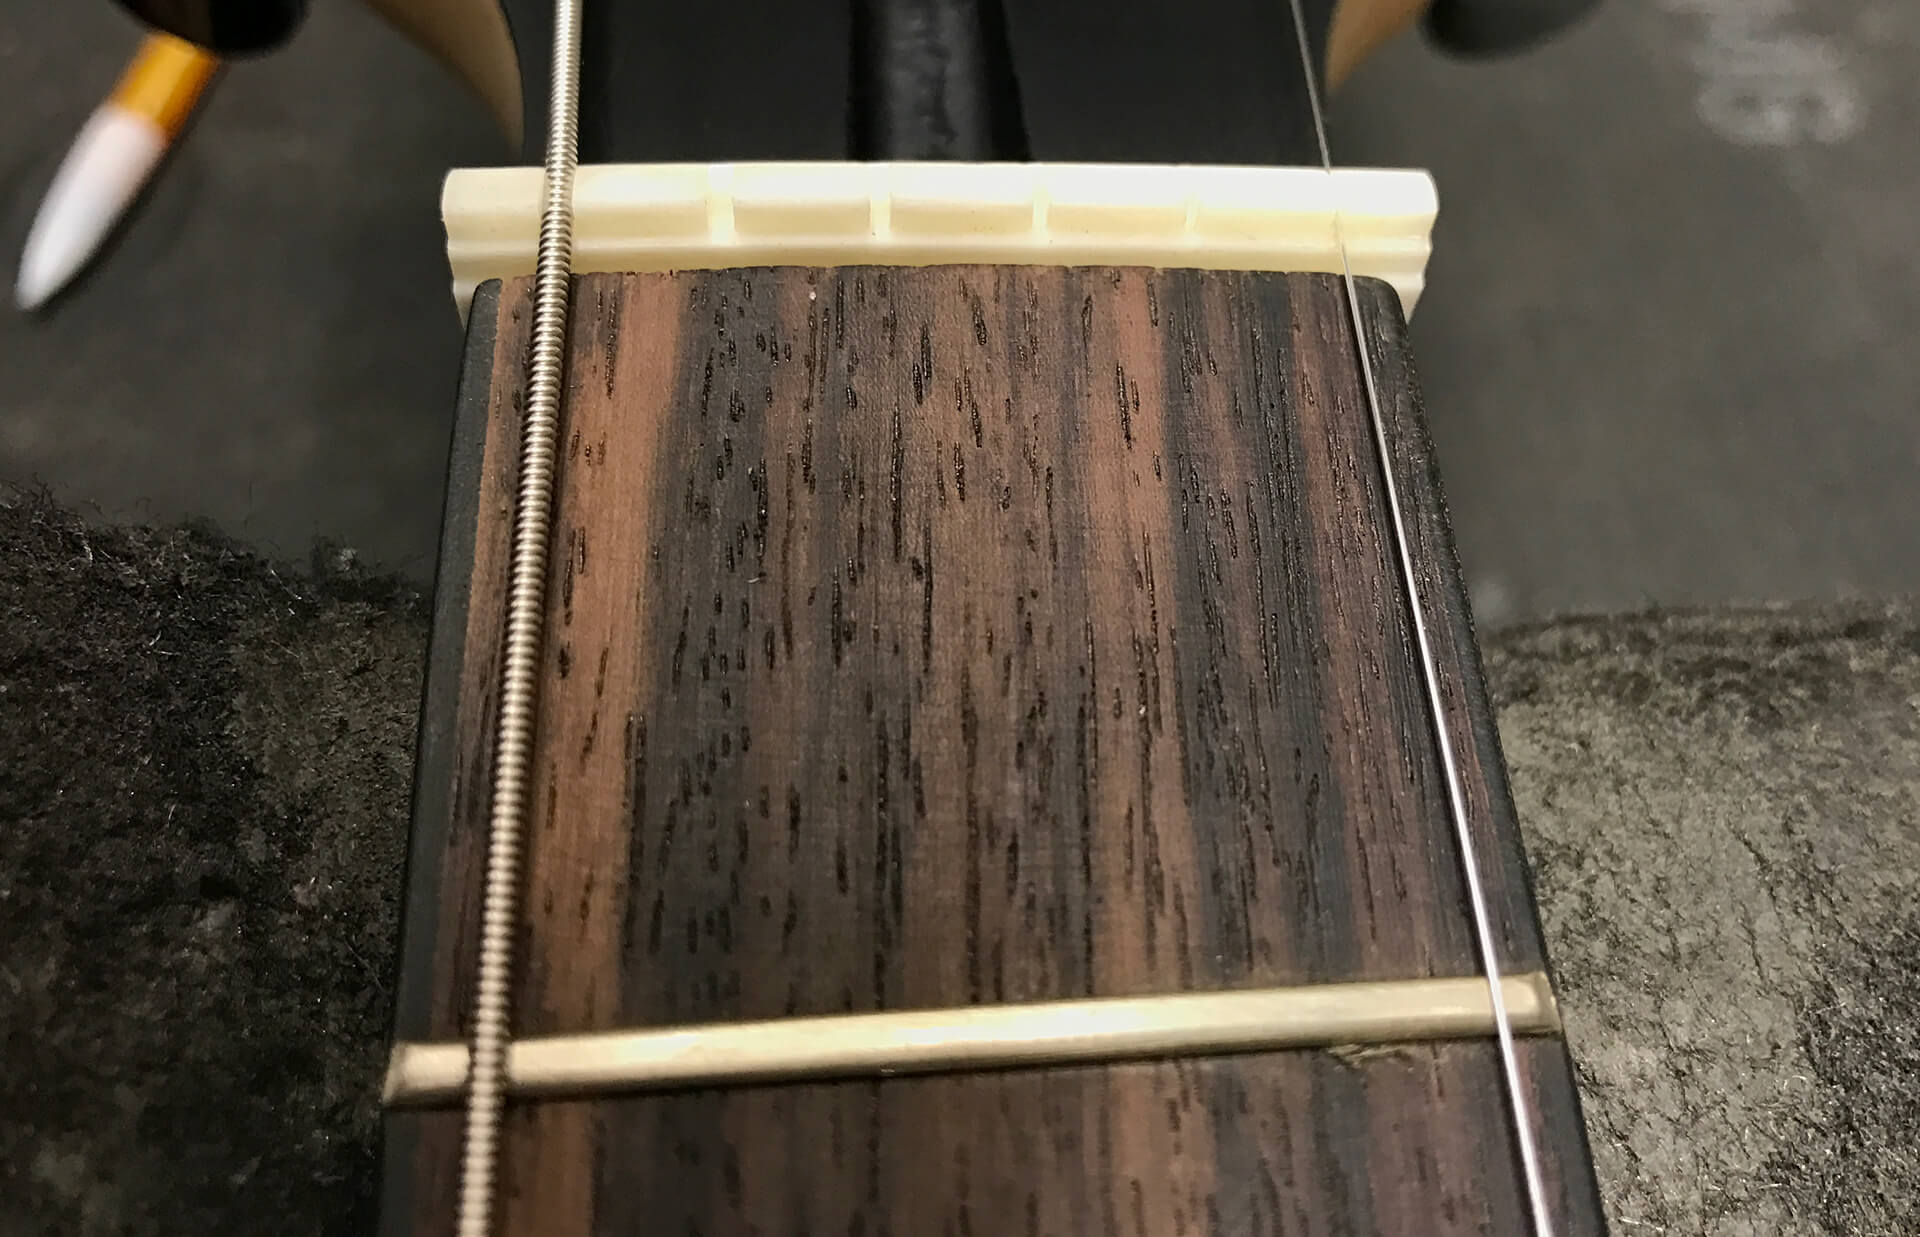 It may be helpful to place the two outside strings into the two outside slots of the nut to better visualize and determine the accurate placement.